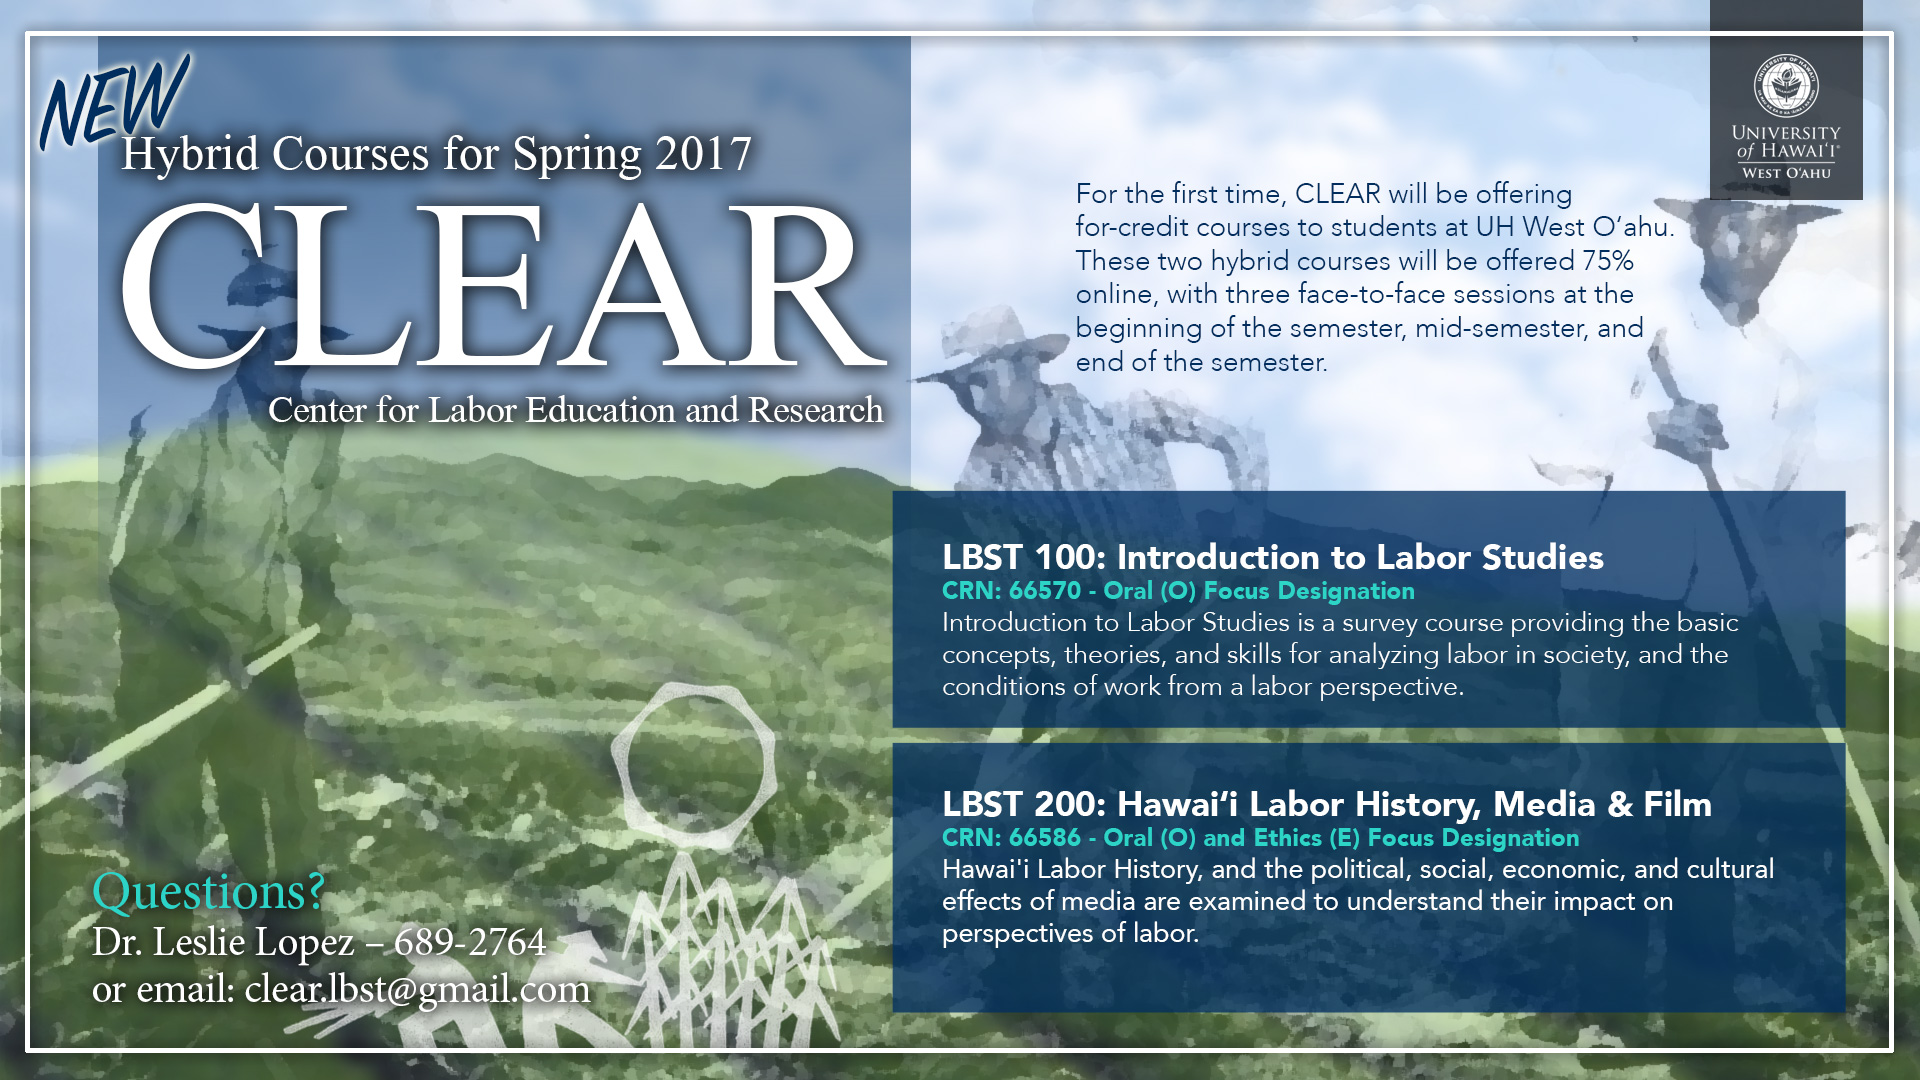 CLEAR Hybrid courses for Spring 2017